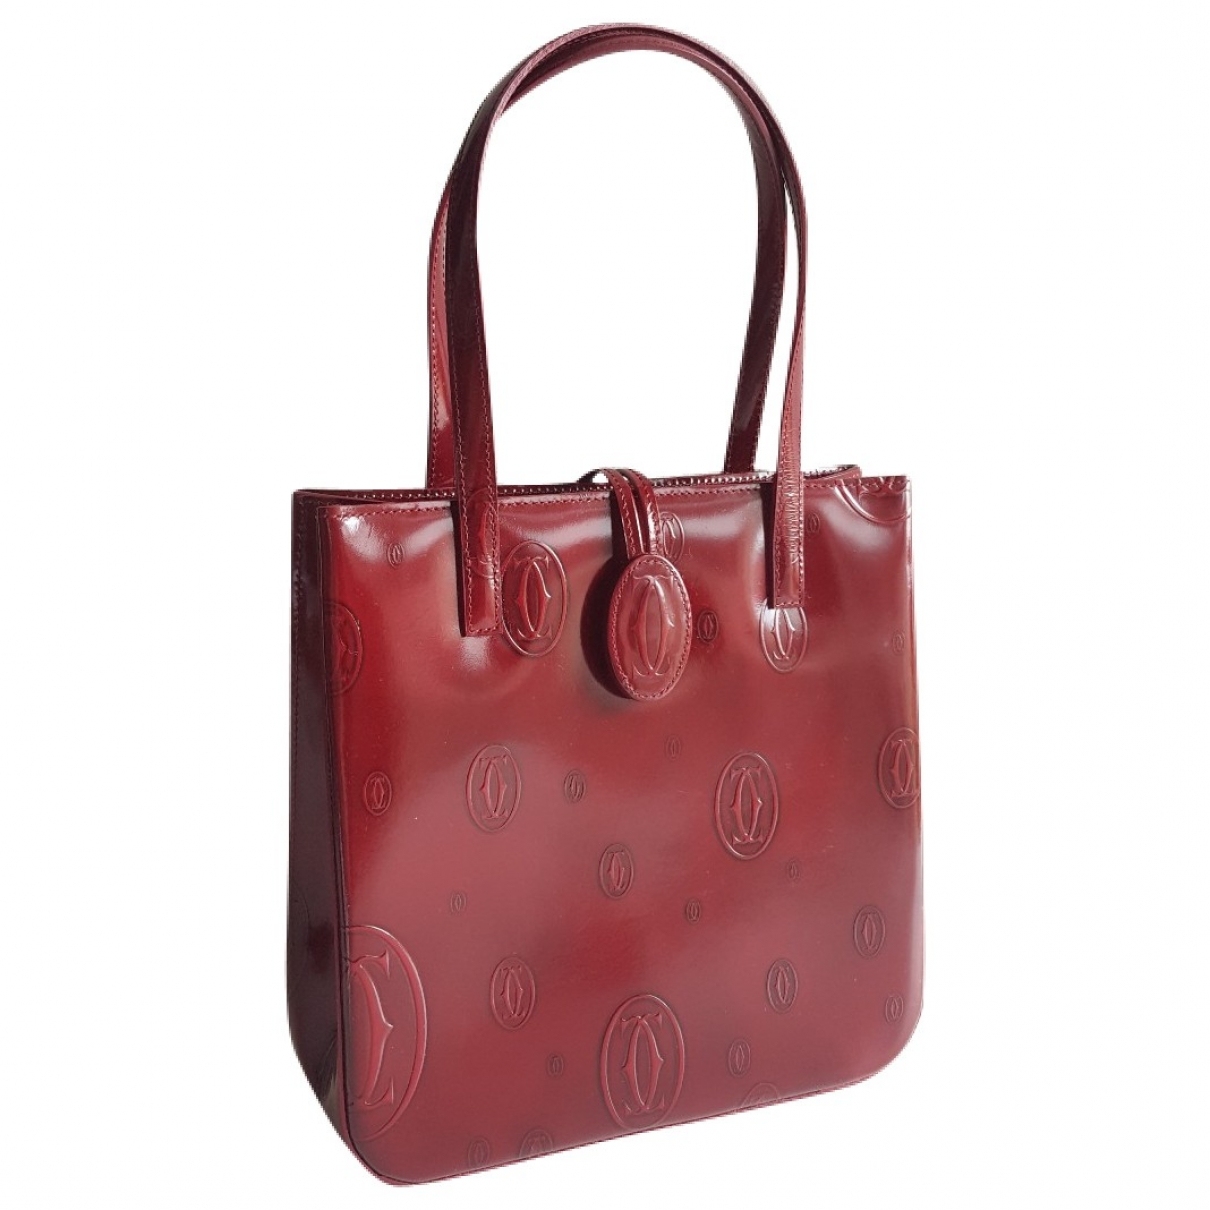 Cartier \N Burgundy Patent leather handbag for Women \N